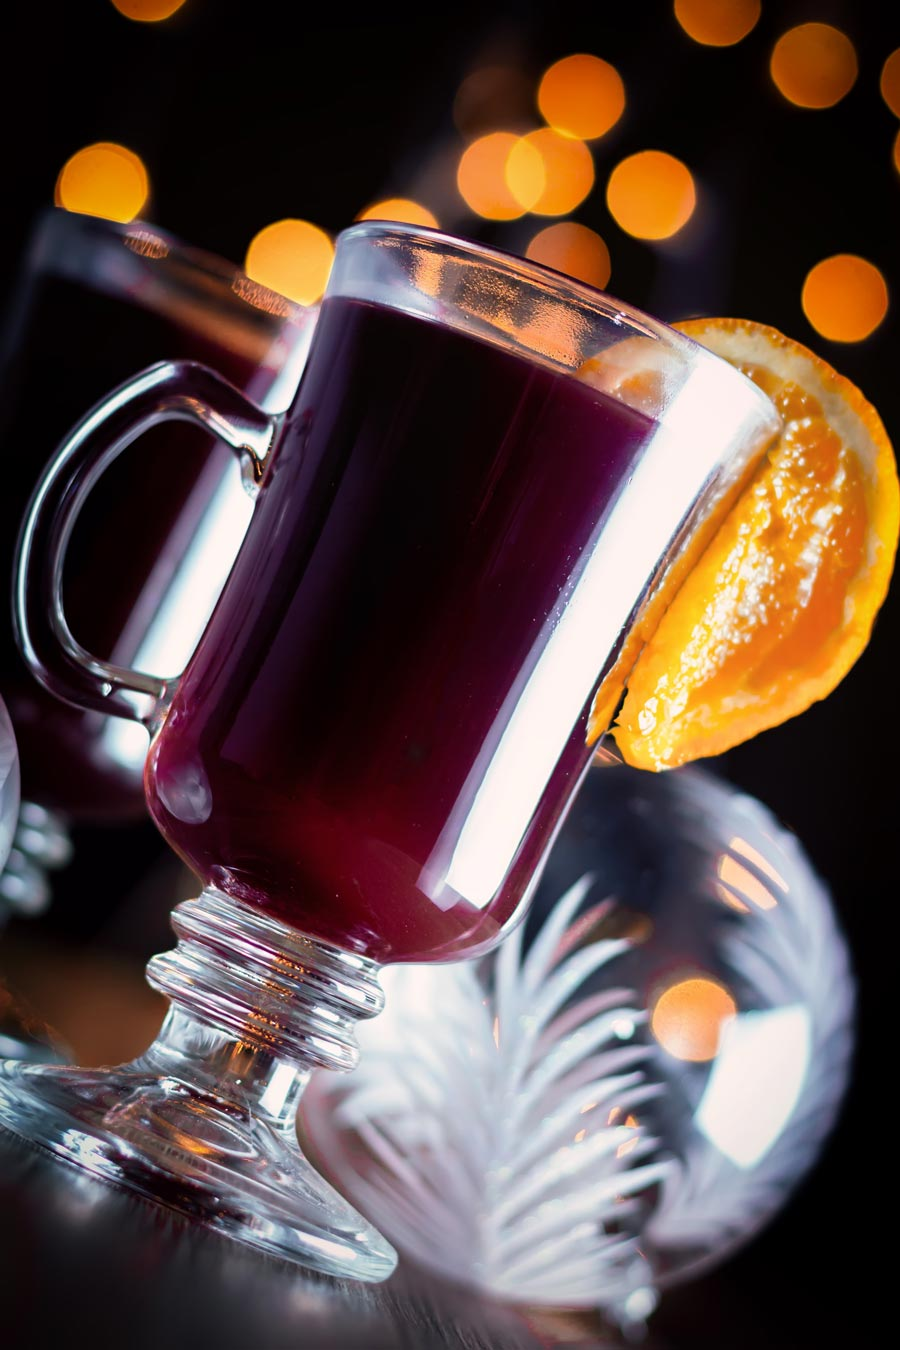 Call it what you will, Mulled Wine, Glühwein, Gløgg or anything else, a warming glass of wine is the perfect spicy treat for long cold and dark nights!